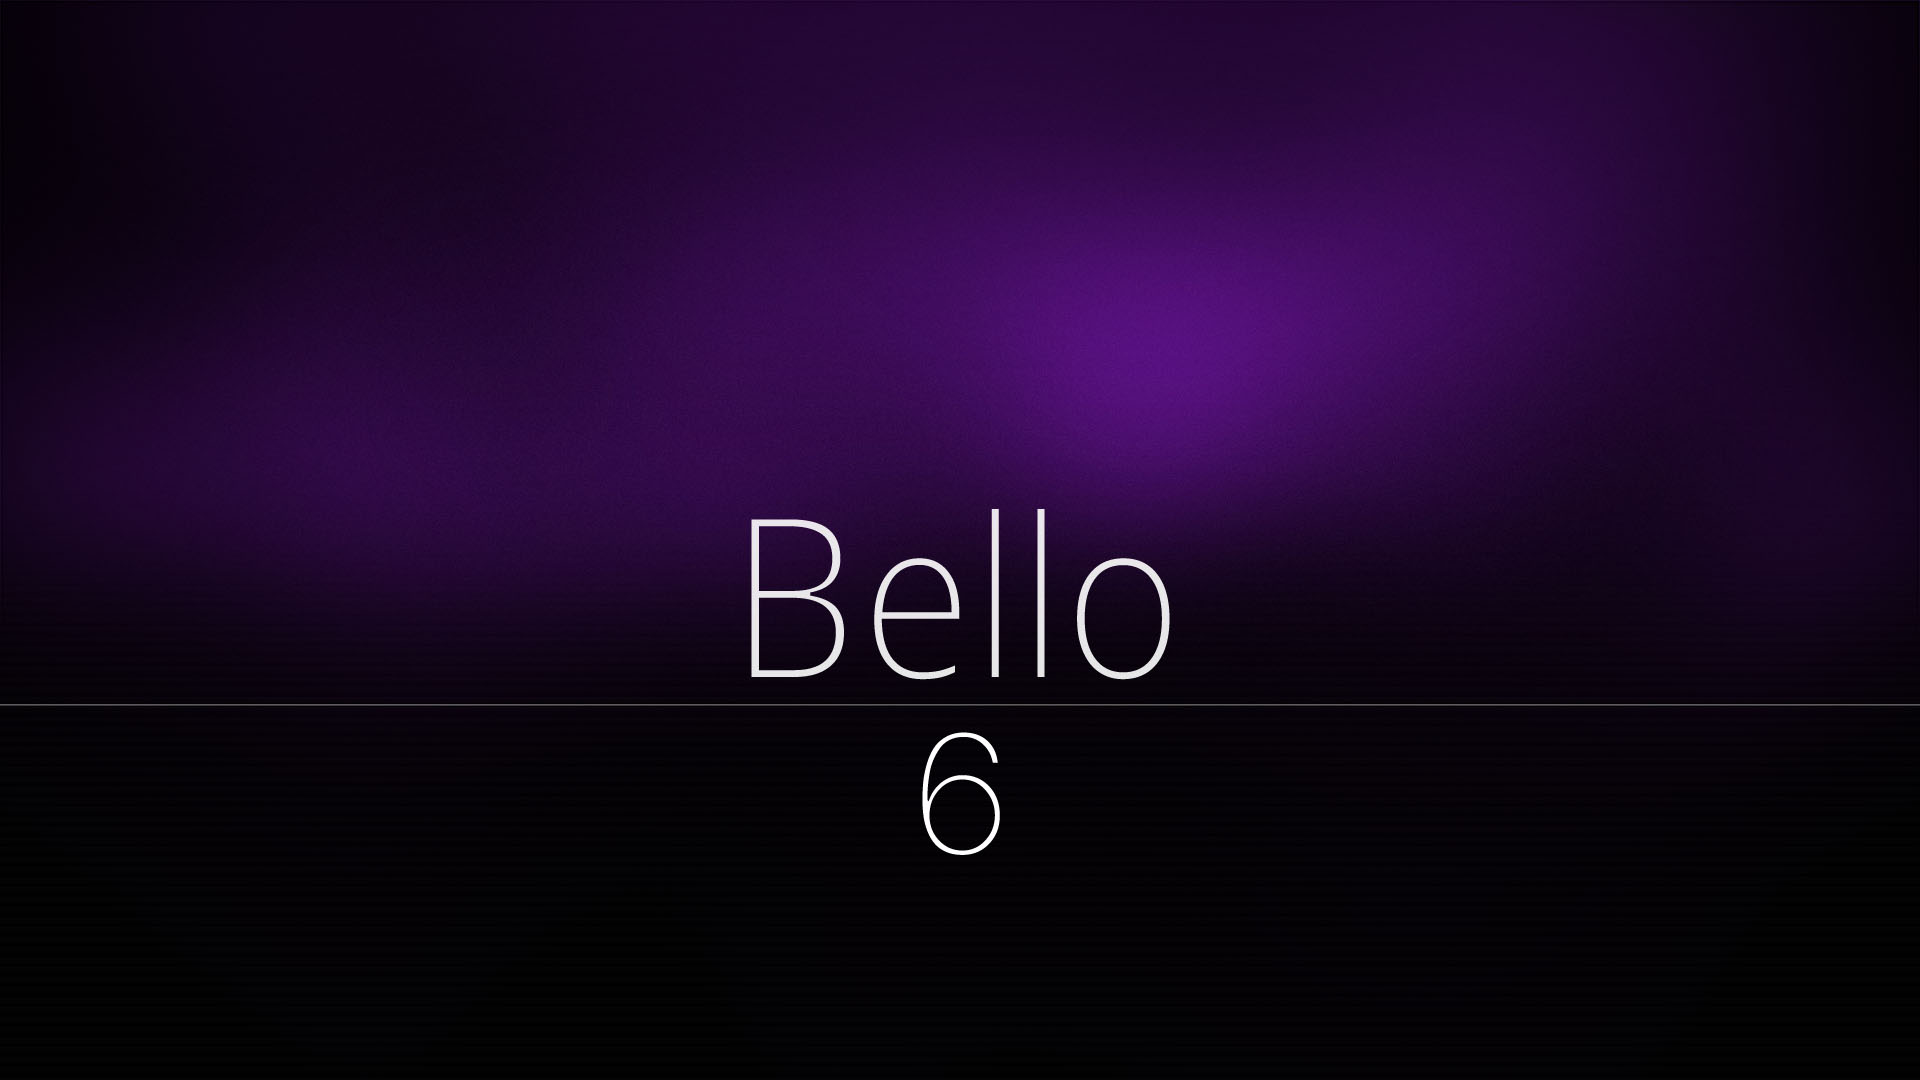 GitHub - Nessus85100/skin bello 6: This is the 6th generation of